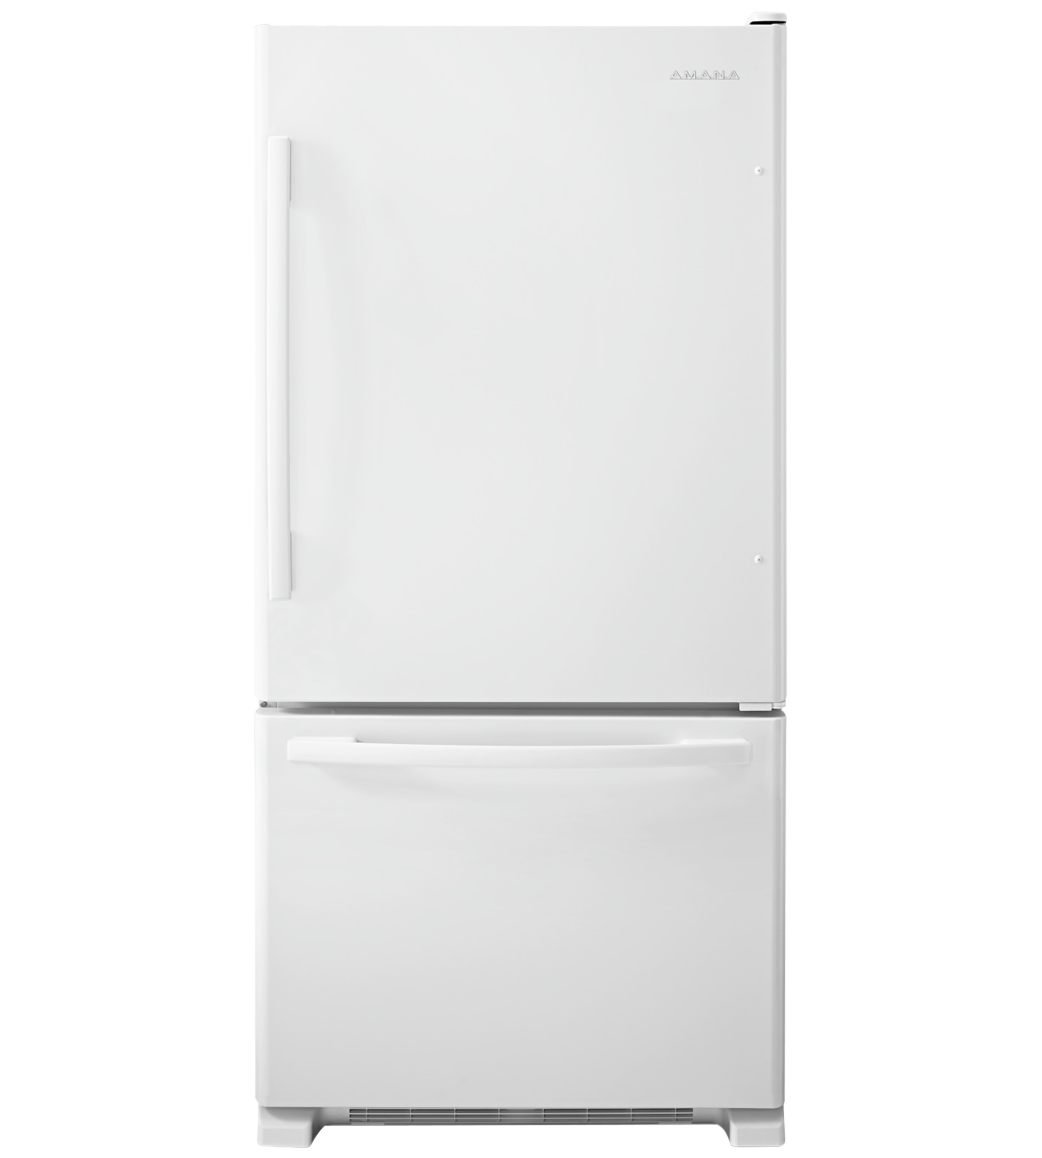 Amana Refrigerator 33 ABB2224BR in White color showcased by Corbeil Electro Store